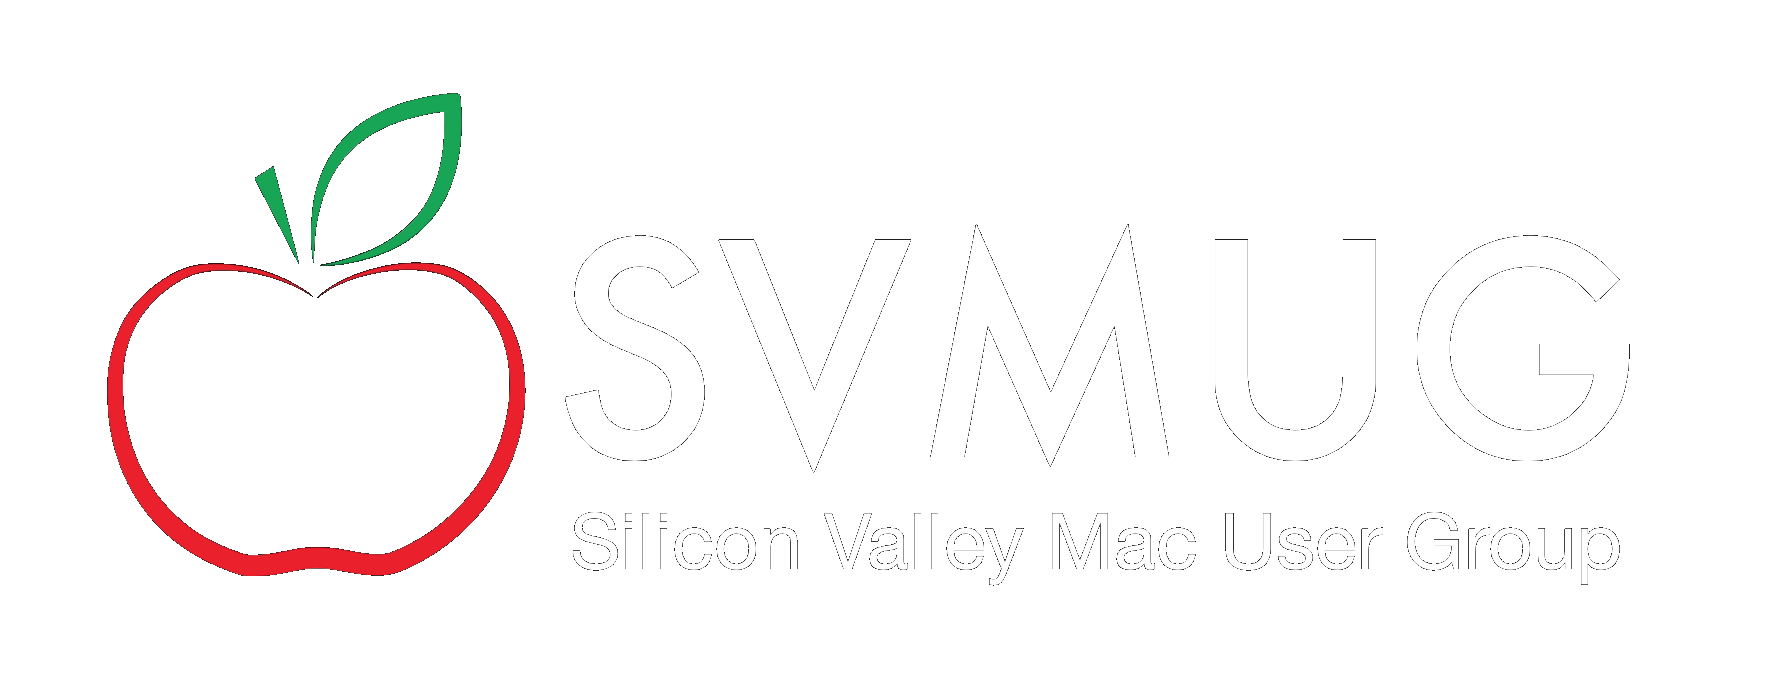 Silicon Valley Mac User Group